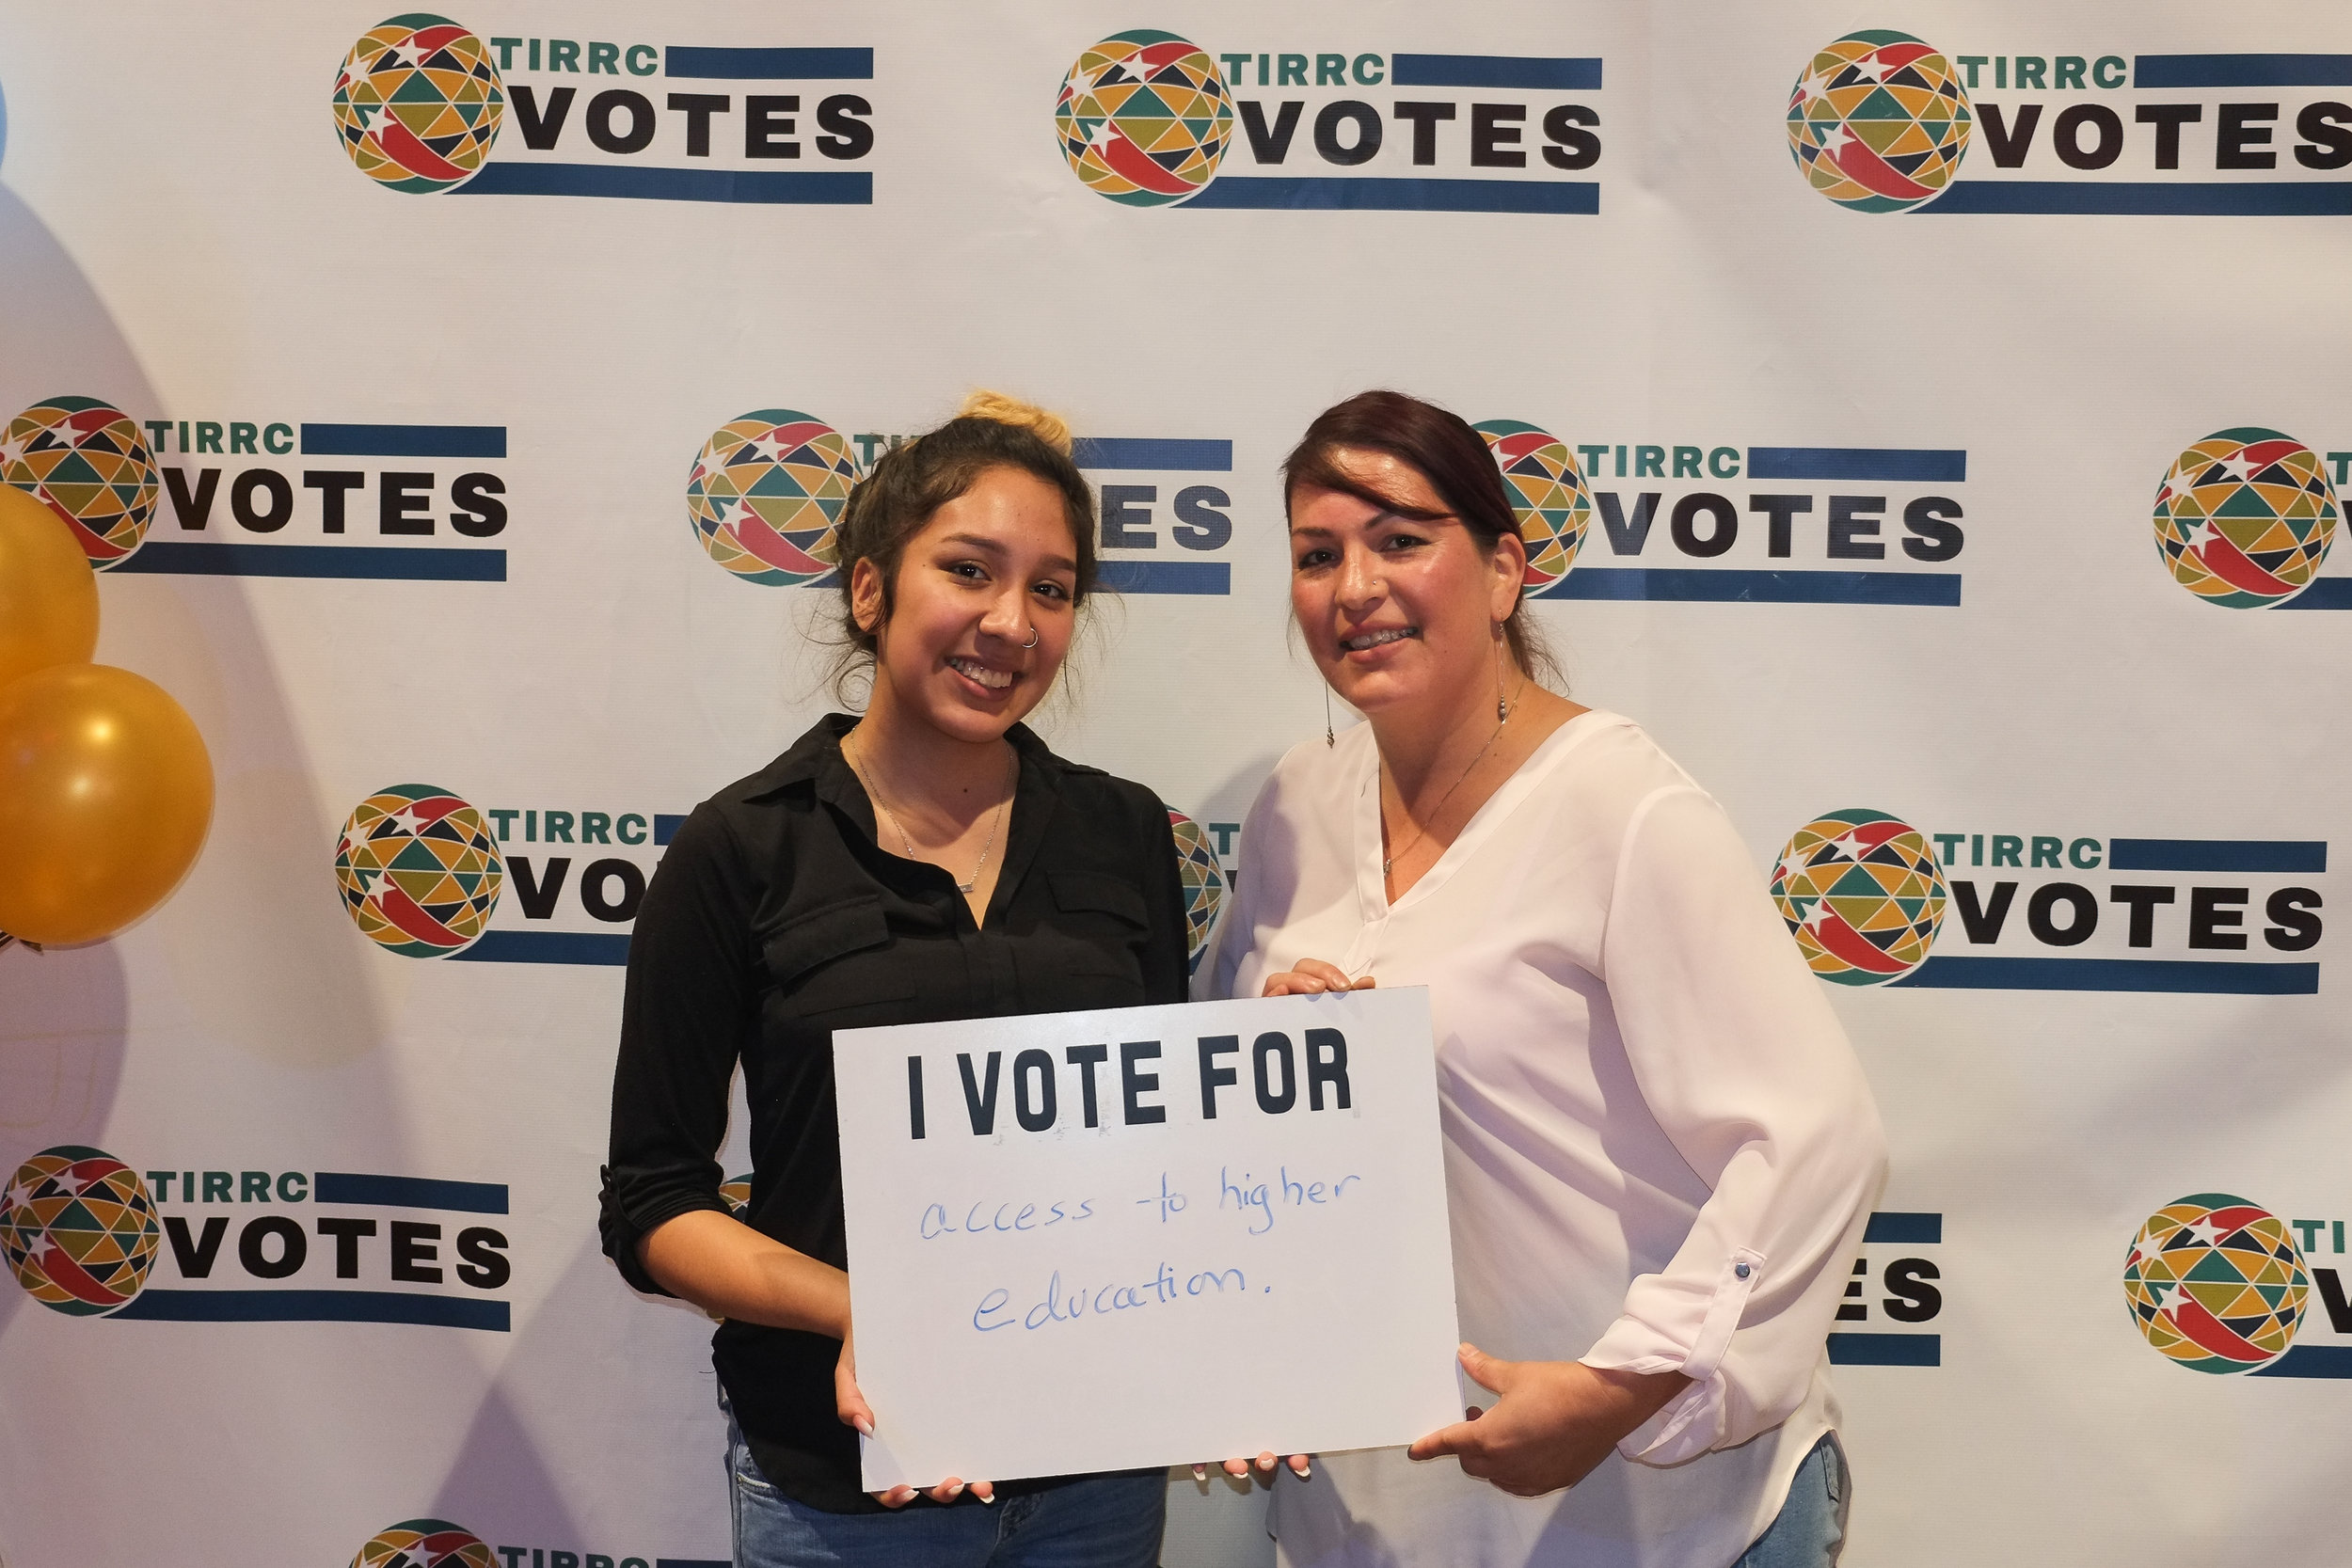 TIRRCVotes-PhotoBooth-59.jpg